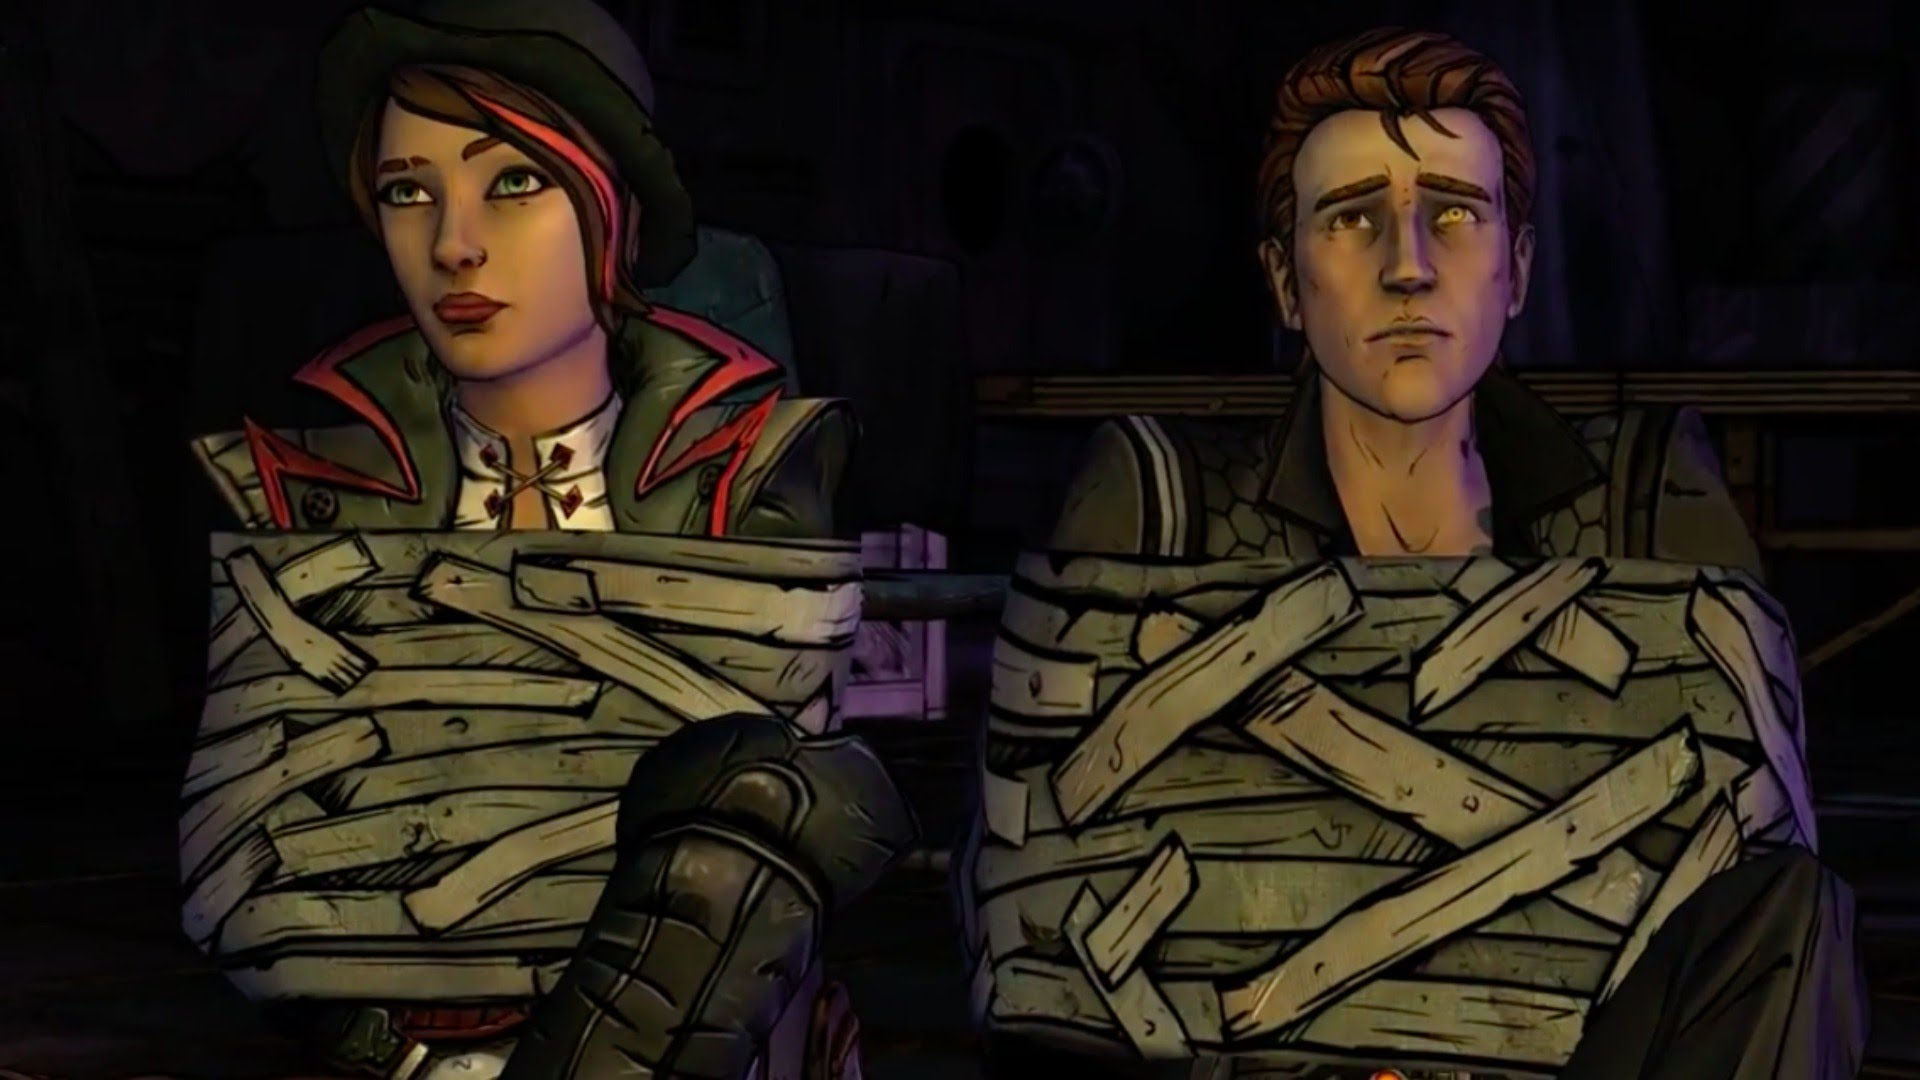 Tales from the Borderlands: Episode 5 - The Vault of the Traveler widescreen wallpapers